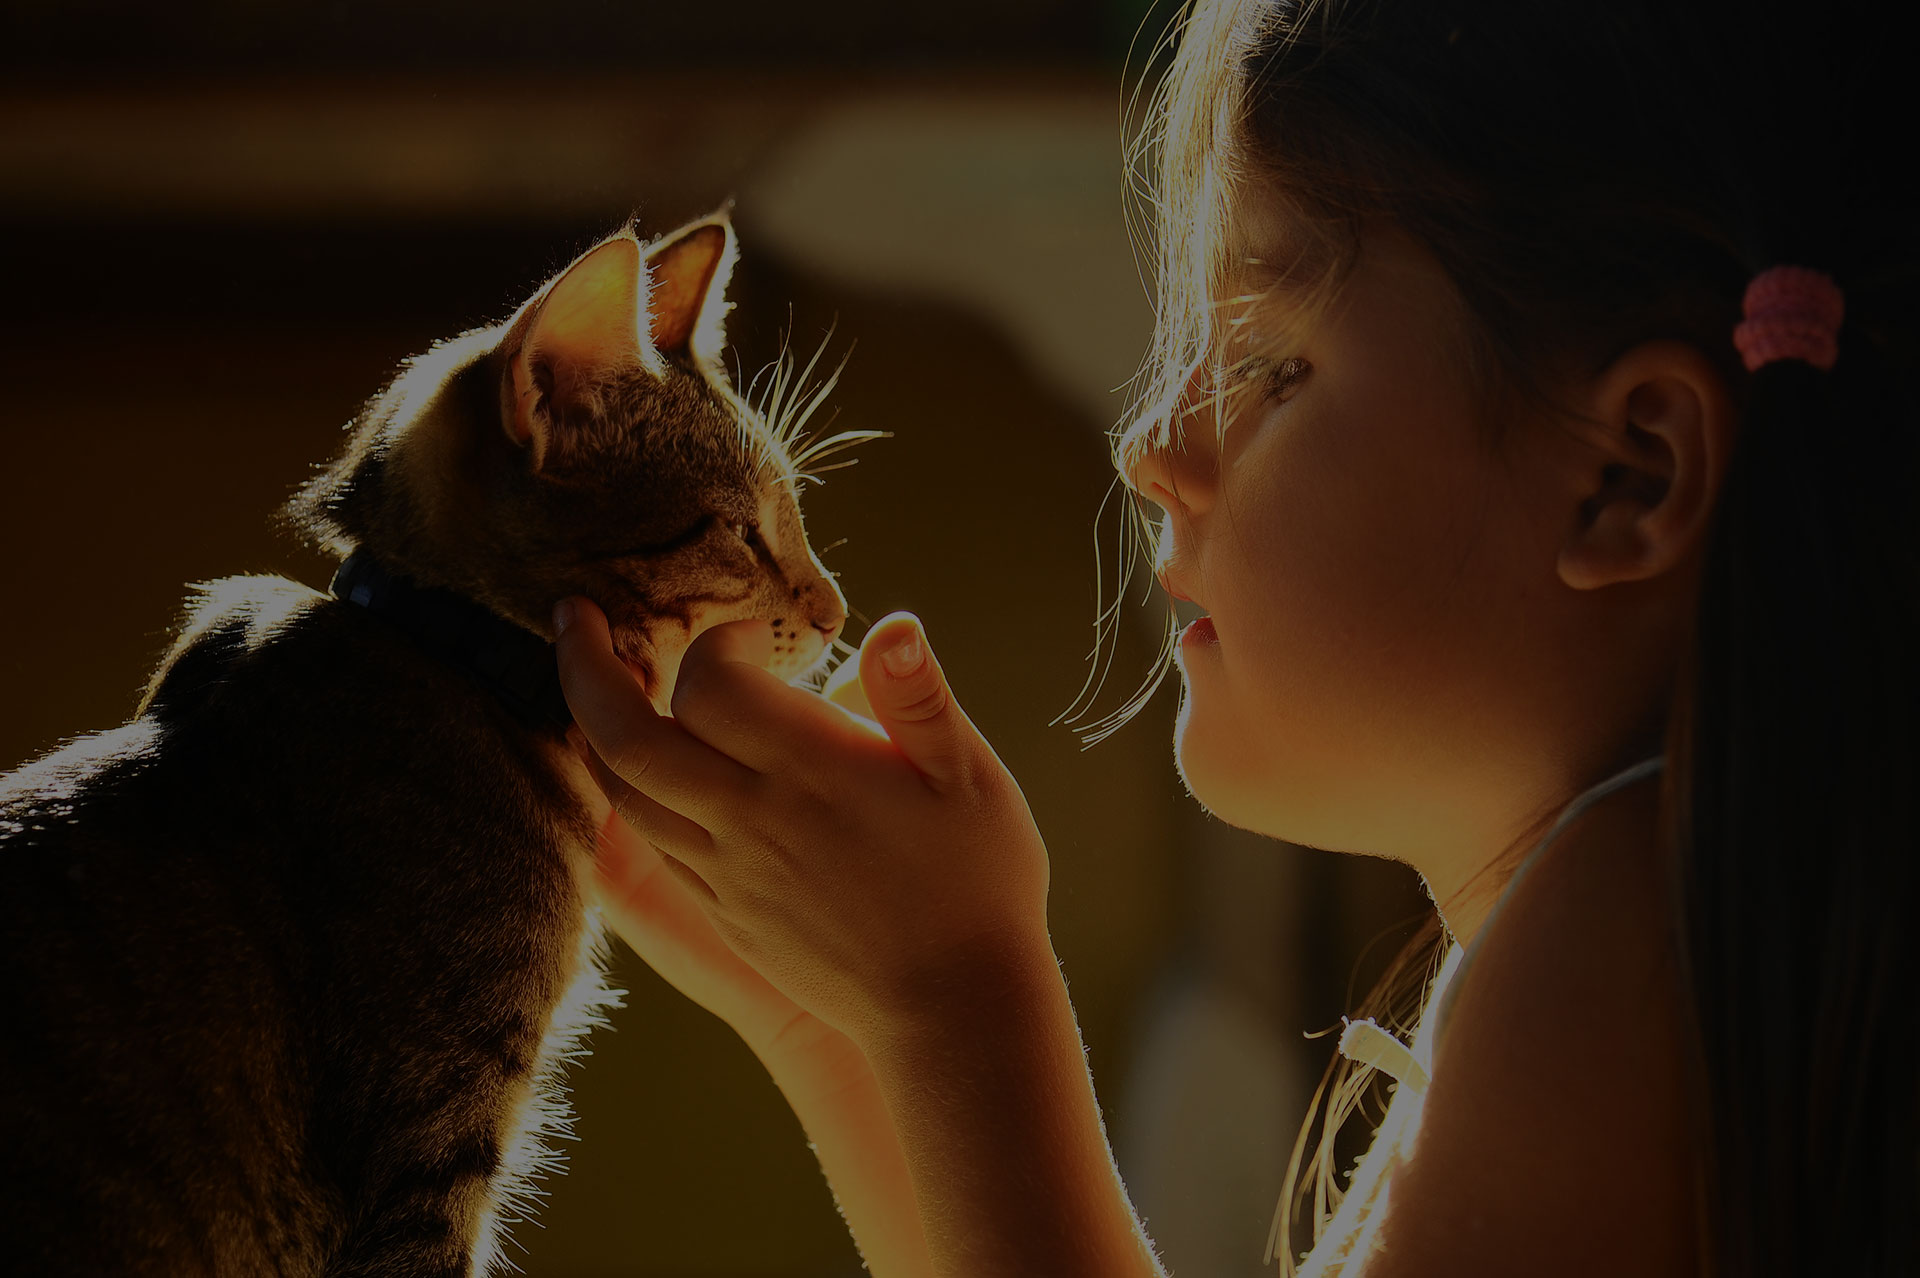 Image of girl and a cat sharing a moment.